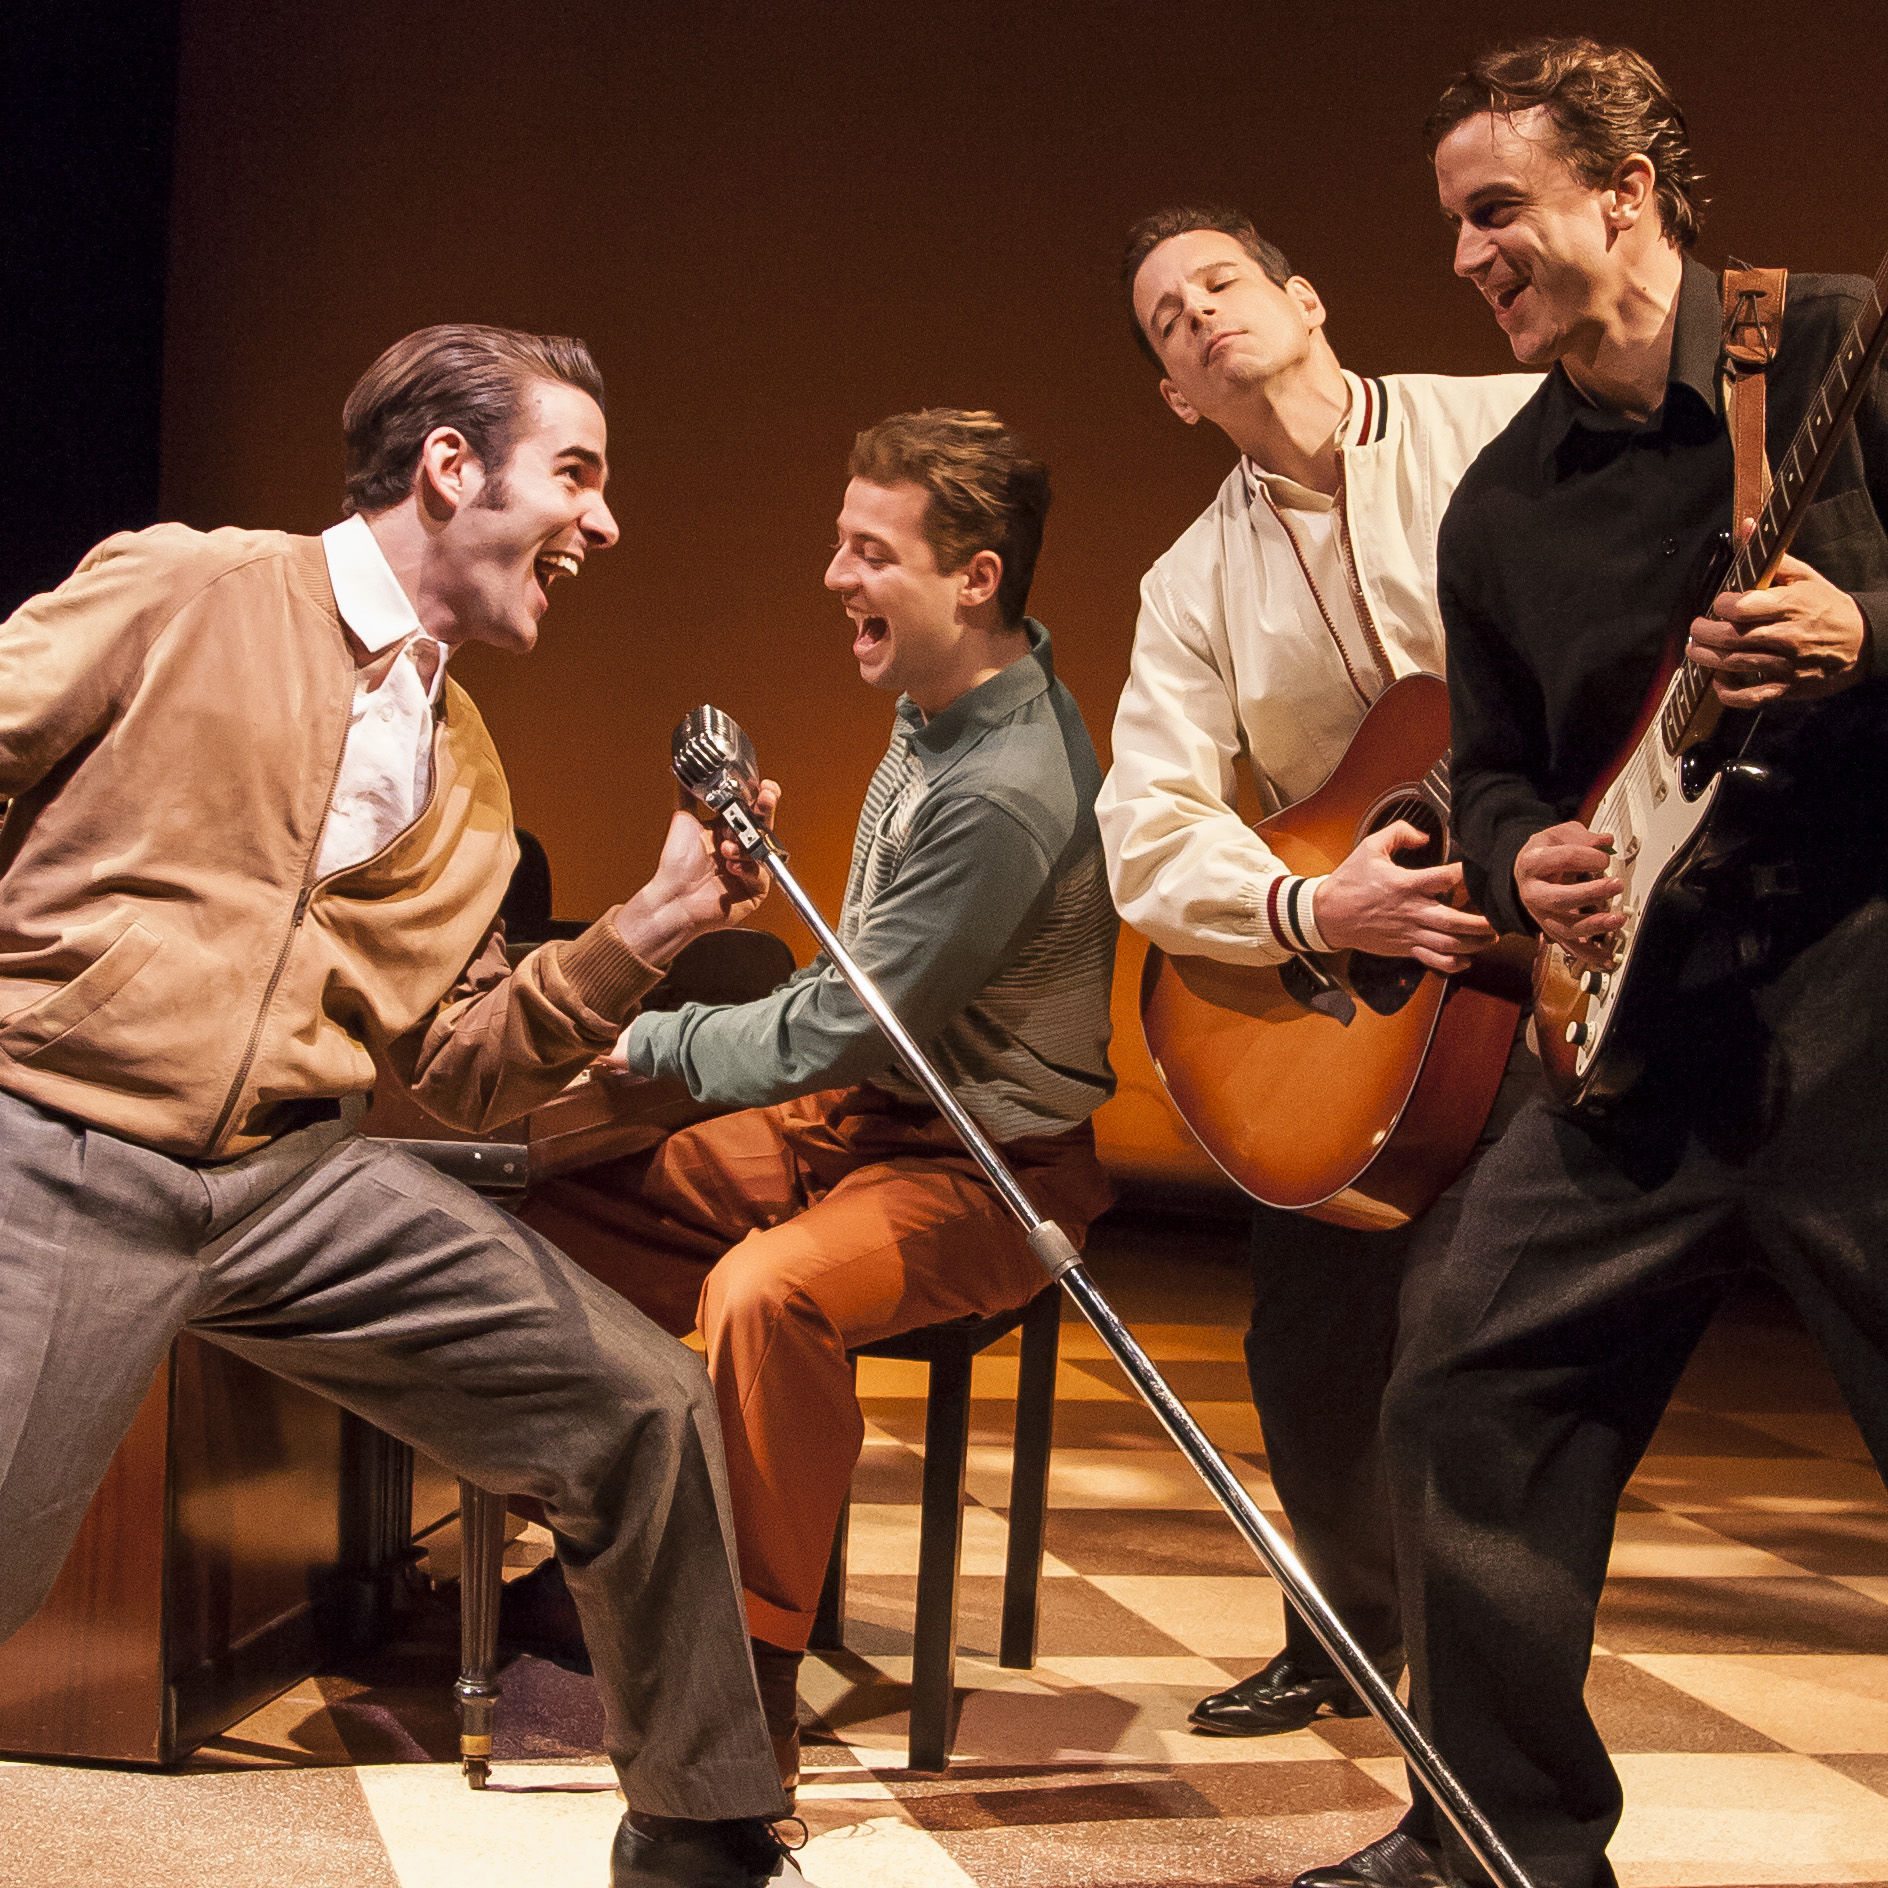 Million dollar quartet lqn8an